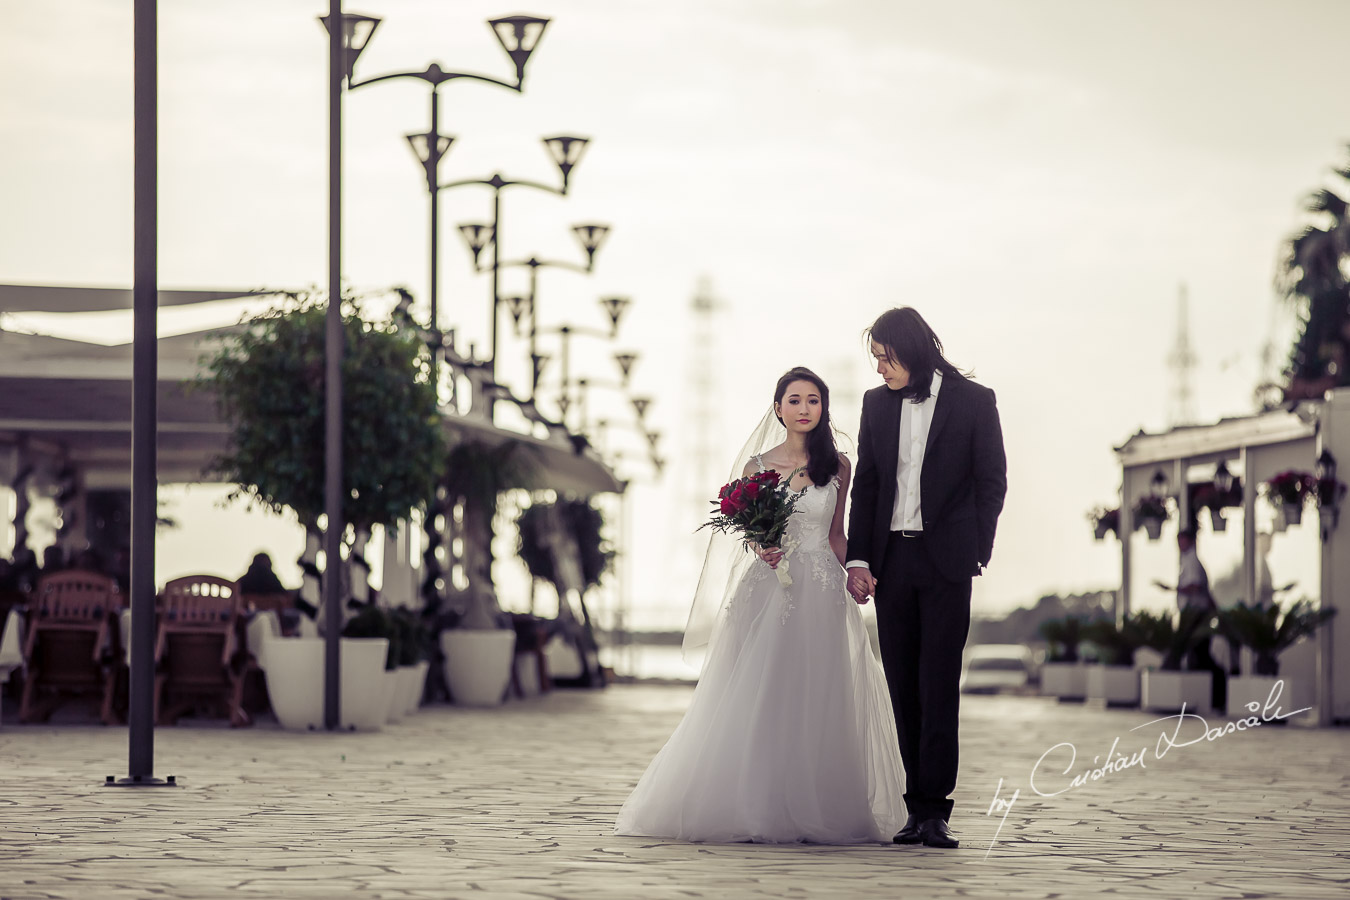 Pre Wedding Photoshoot in Cyprus - 03